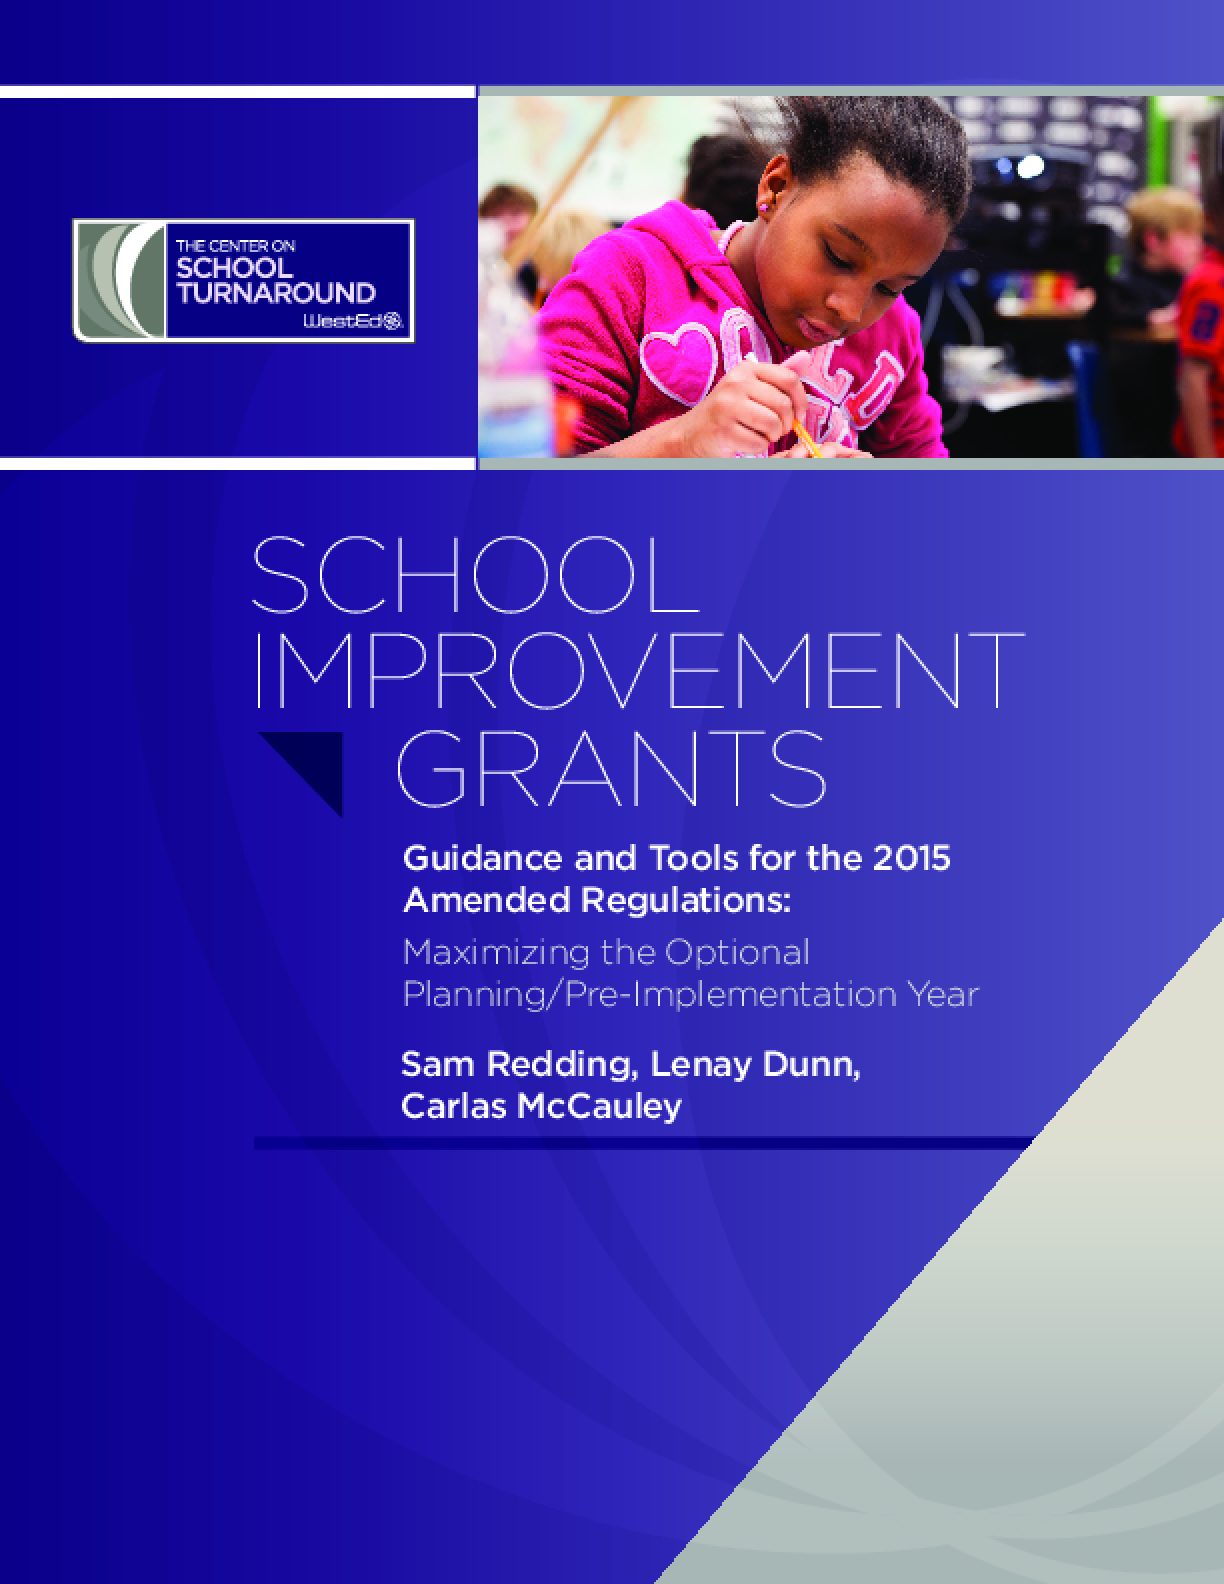 School Improvement Grants: Guidance and Tools for the 2015 Amended Regulations -- Maximizing the Optional Planning/Pre-Implementation Year